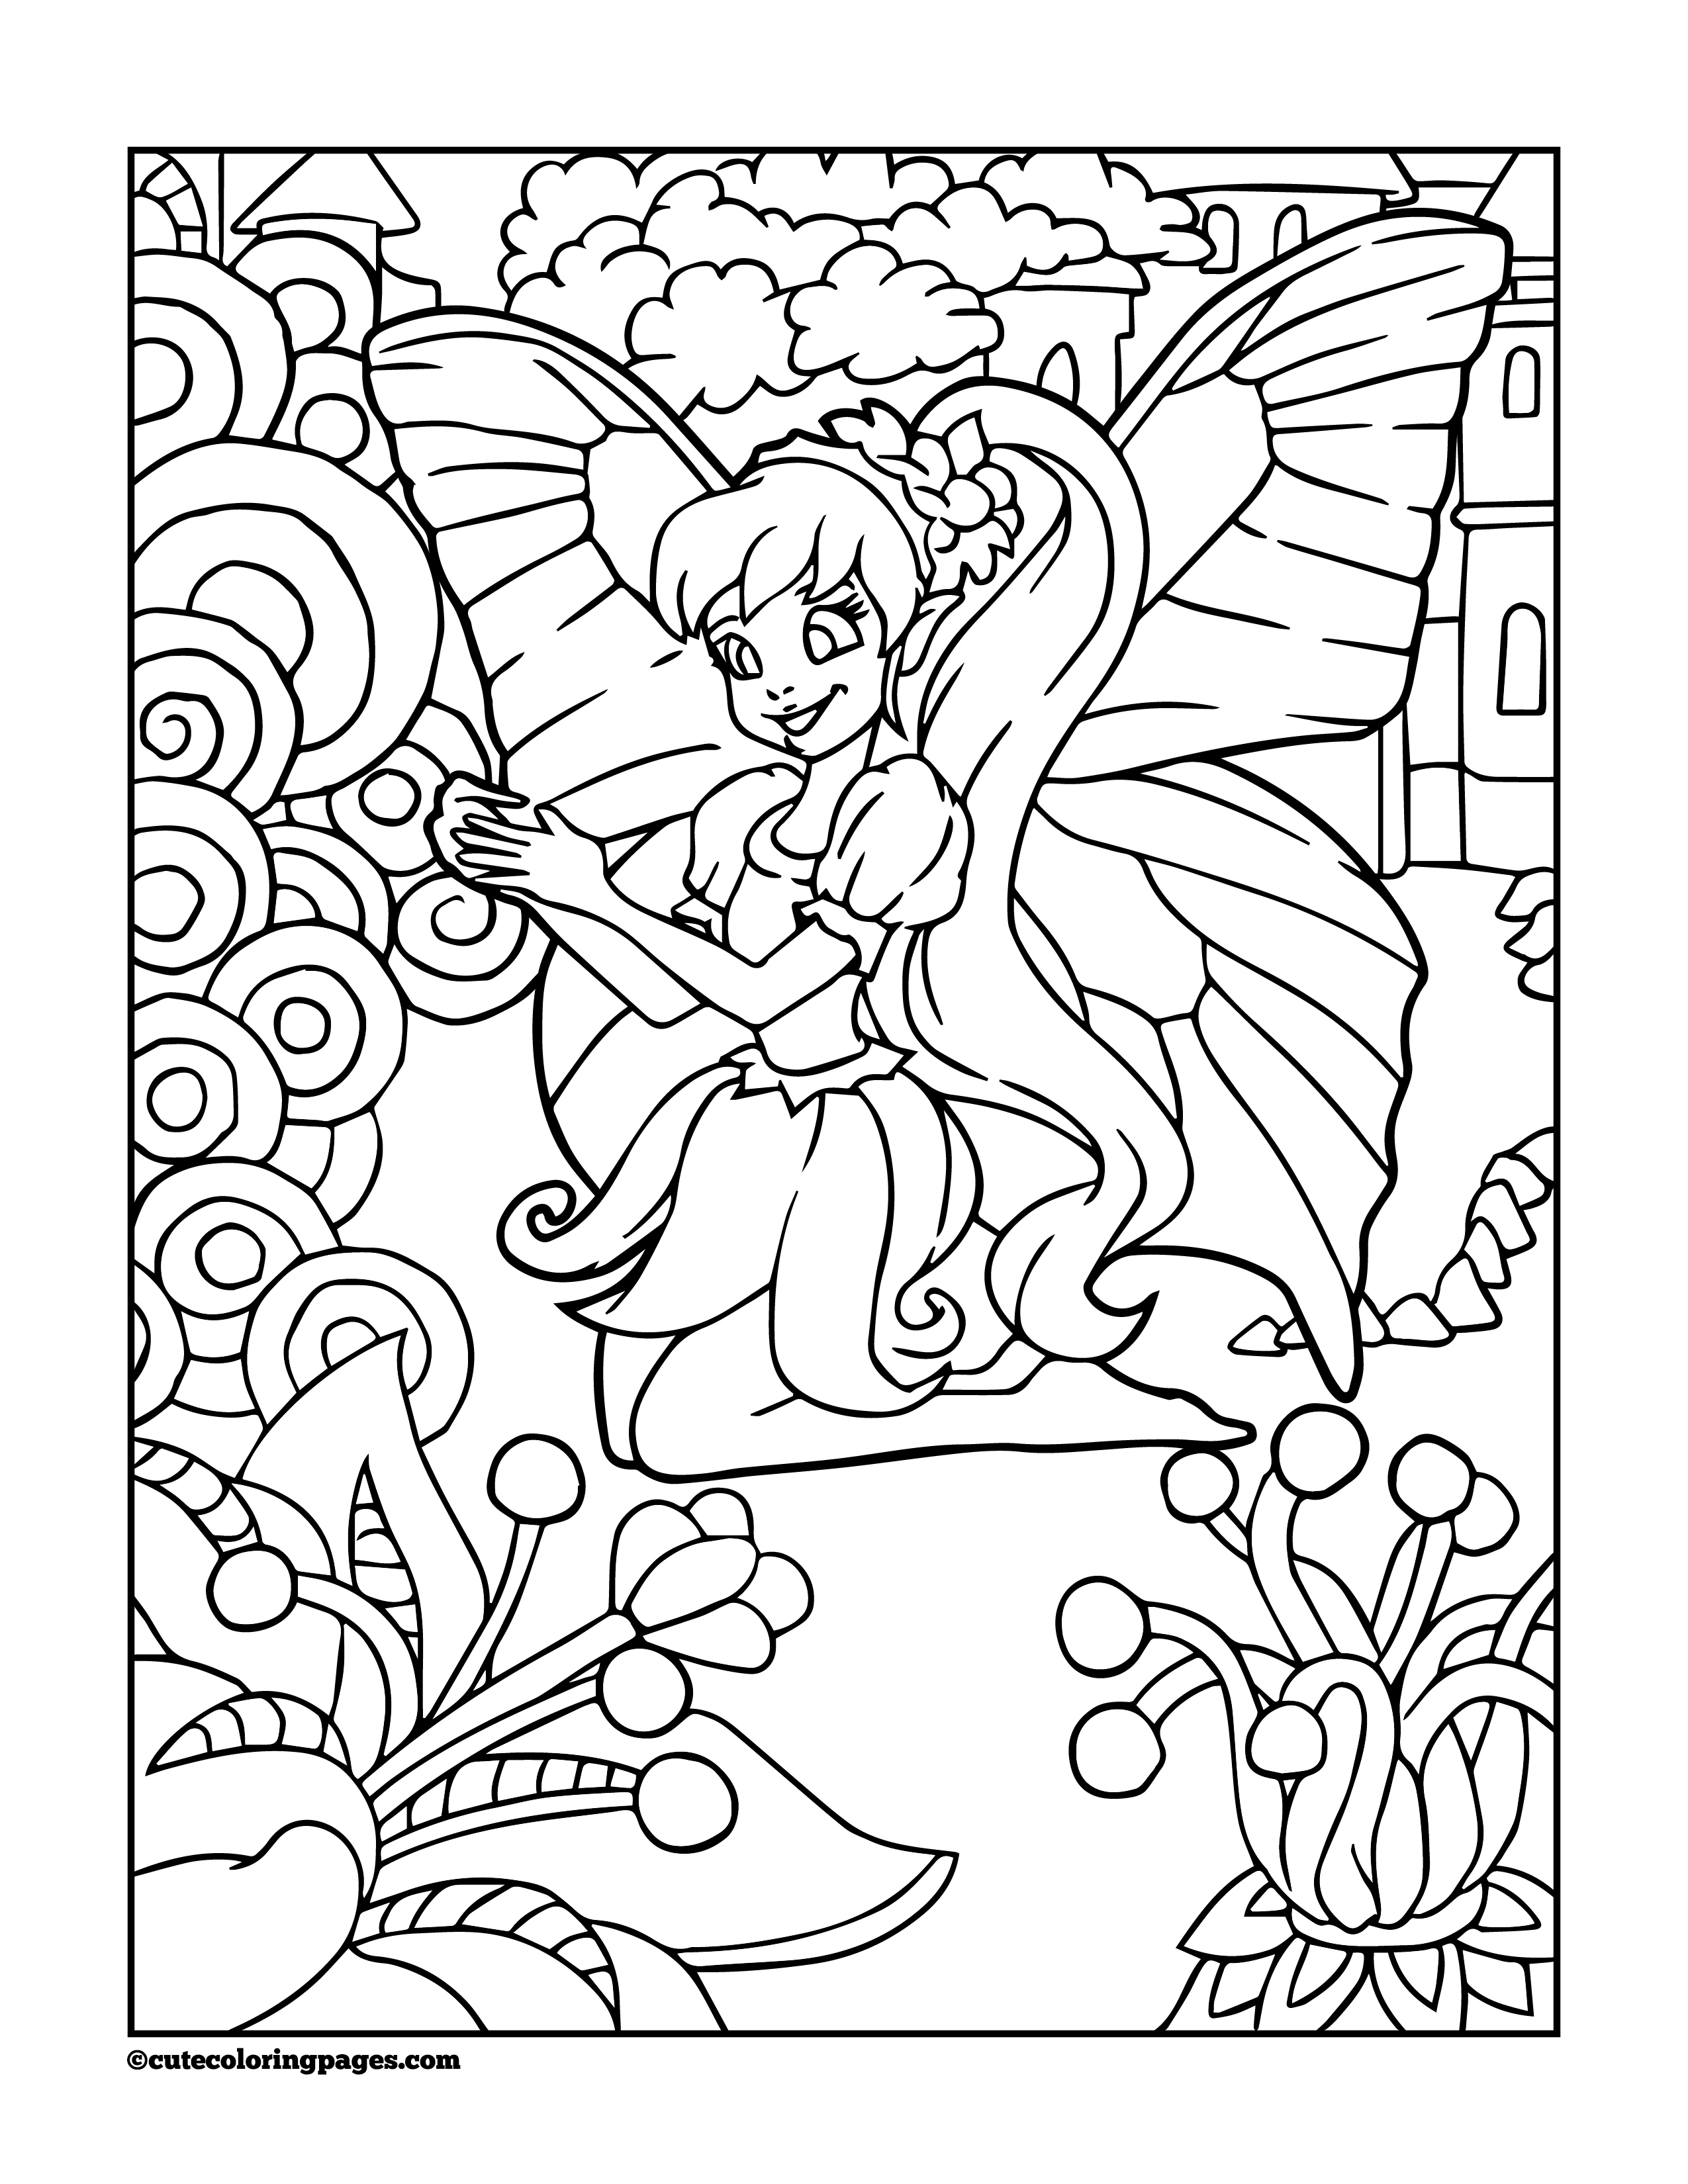 coloring fairies for kids beautiful free fairy coloring pages for boys and girls kids fairies coloring for